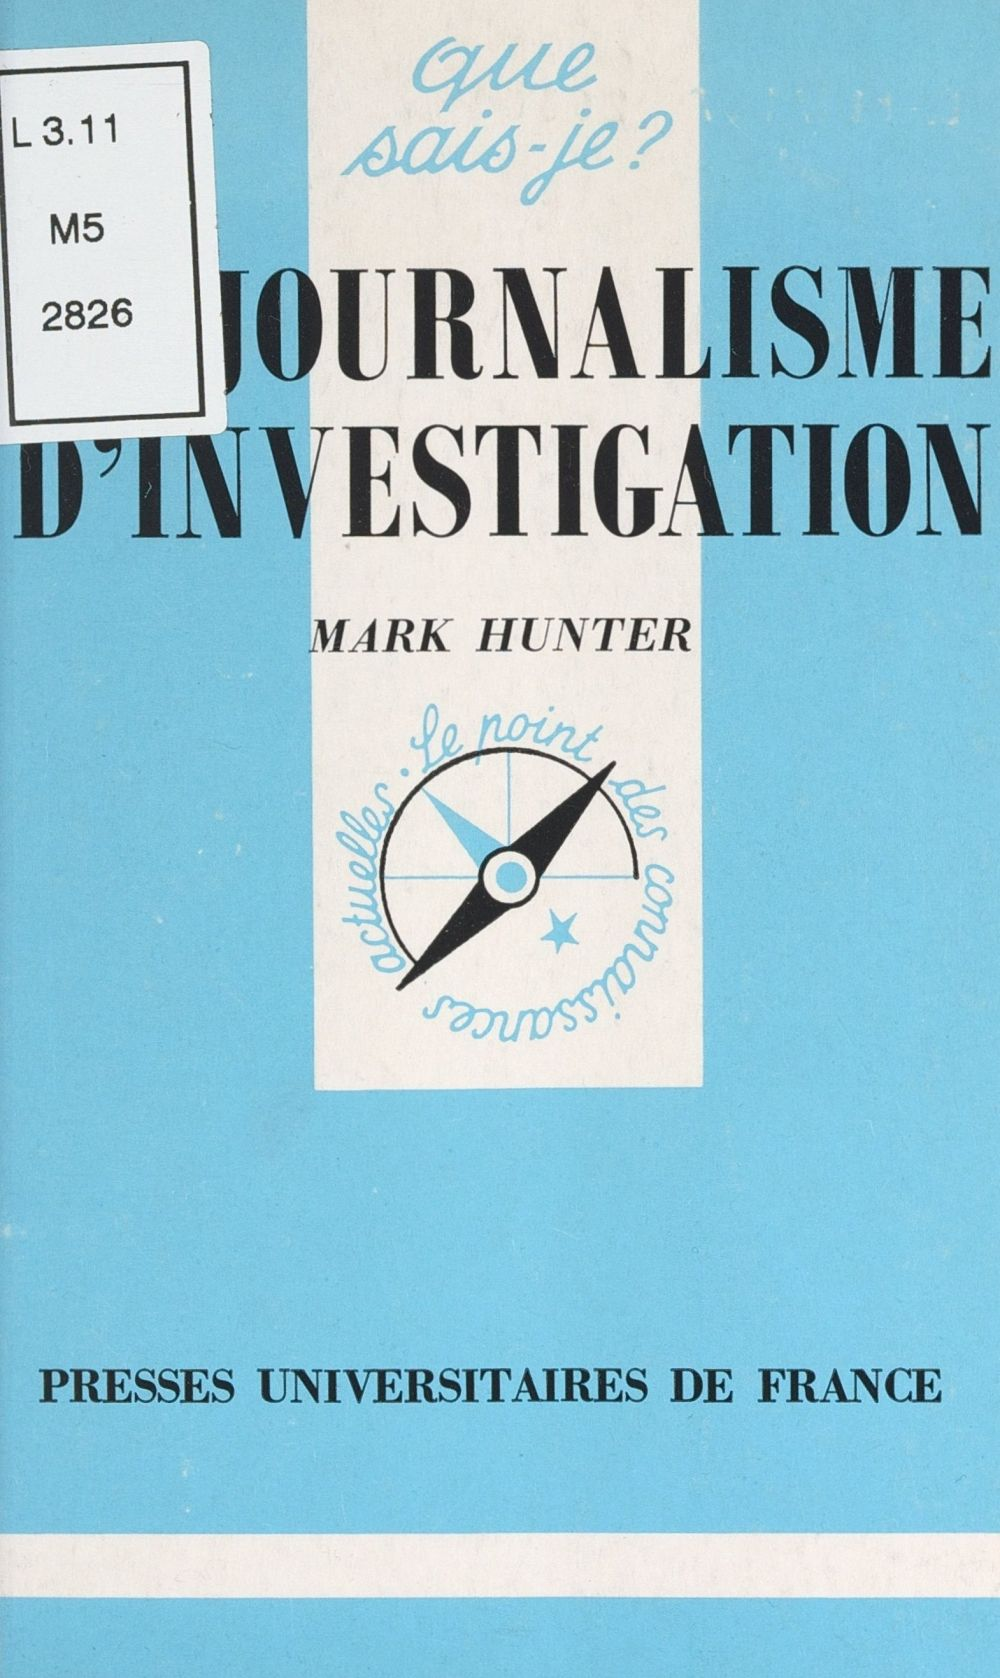 Le journalisme d'investigation